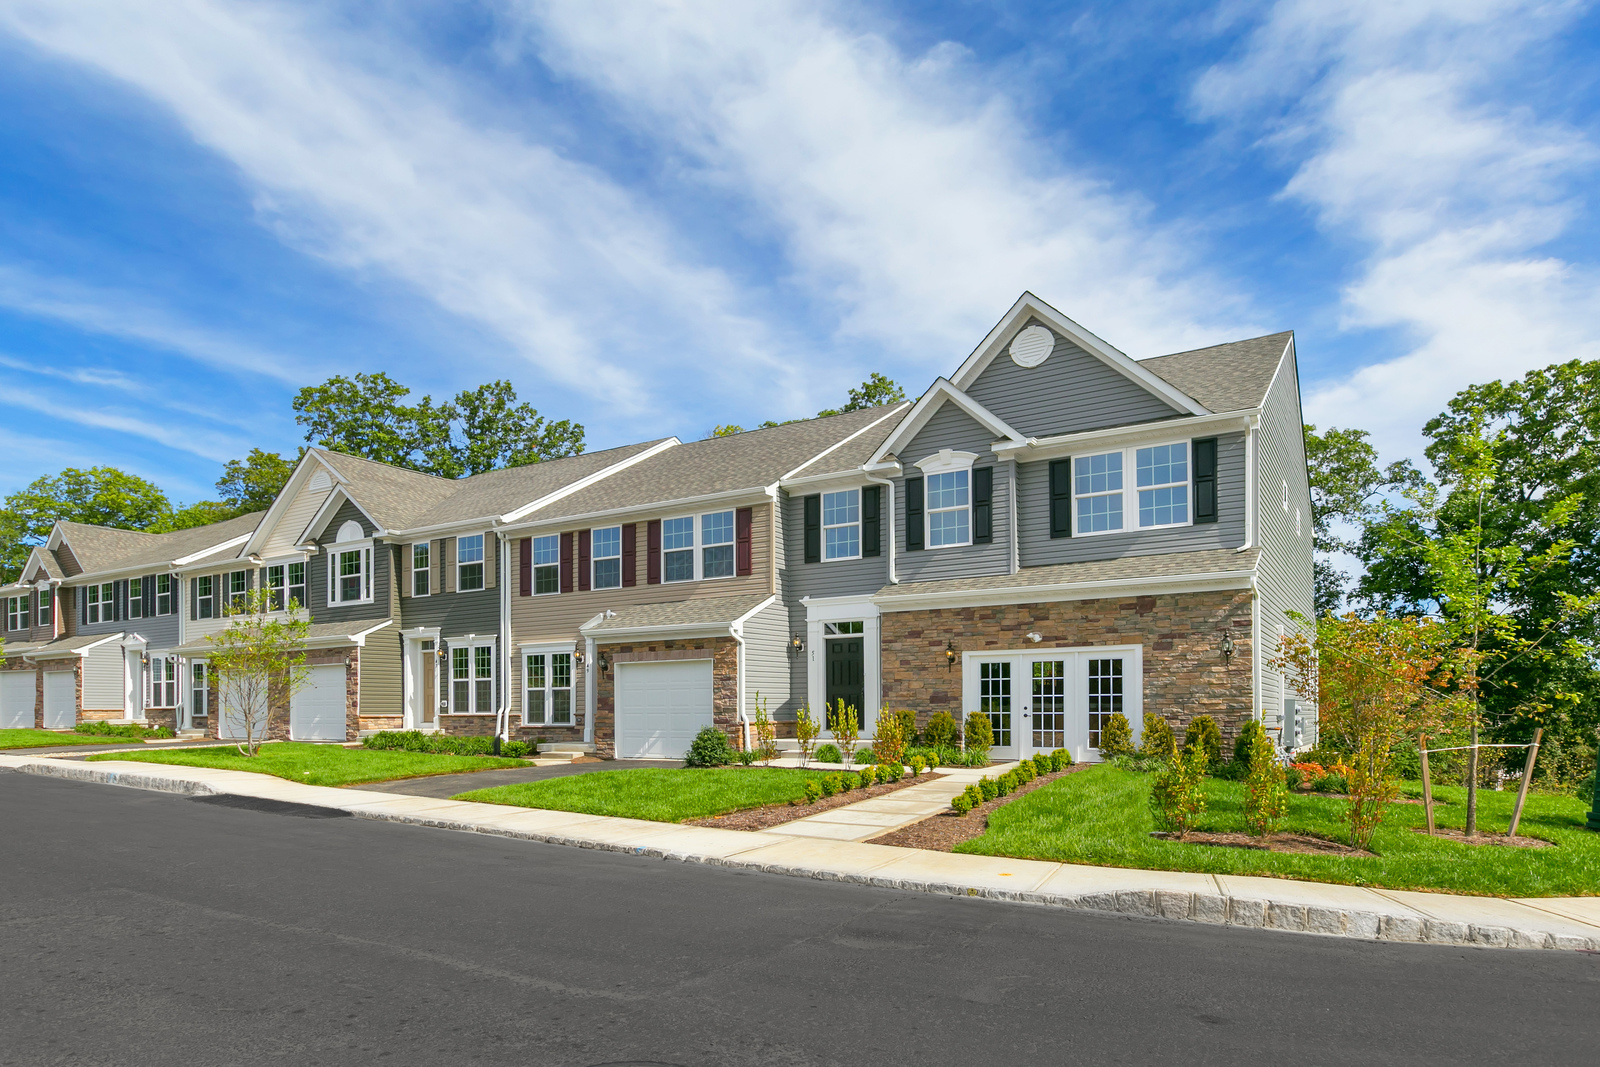 New homes for sale at shadow woods townhomes in mt for Modern homes nj